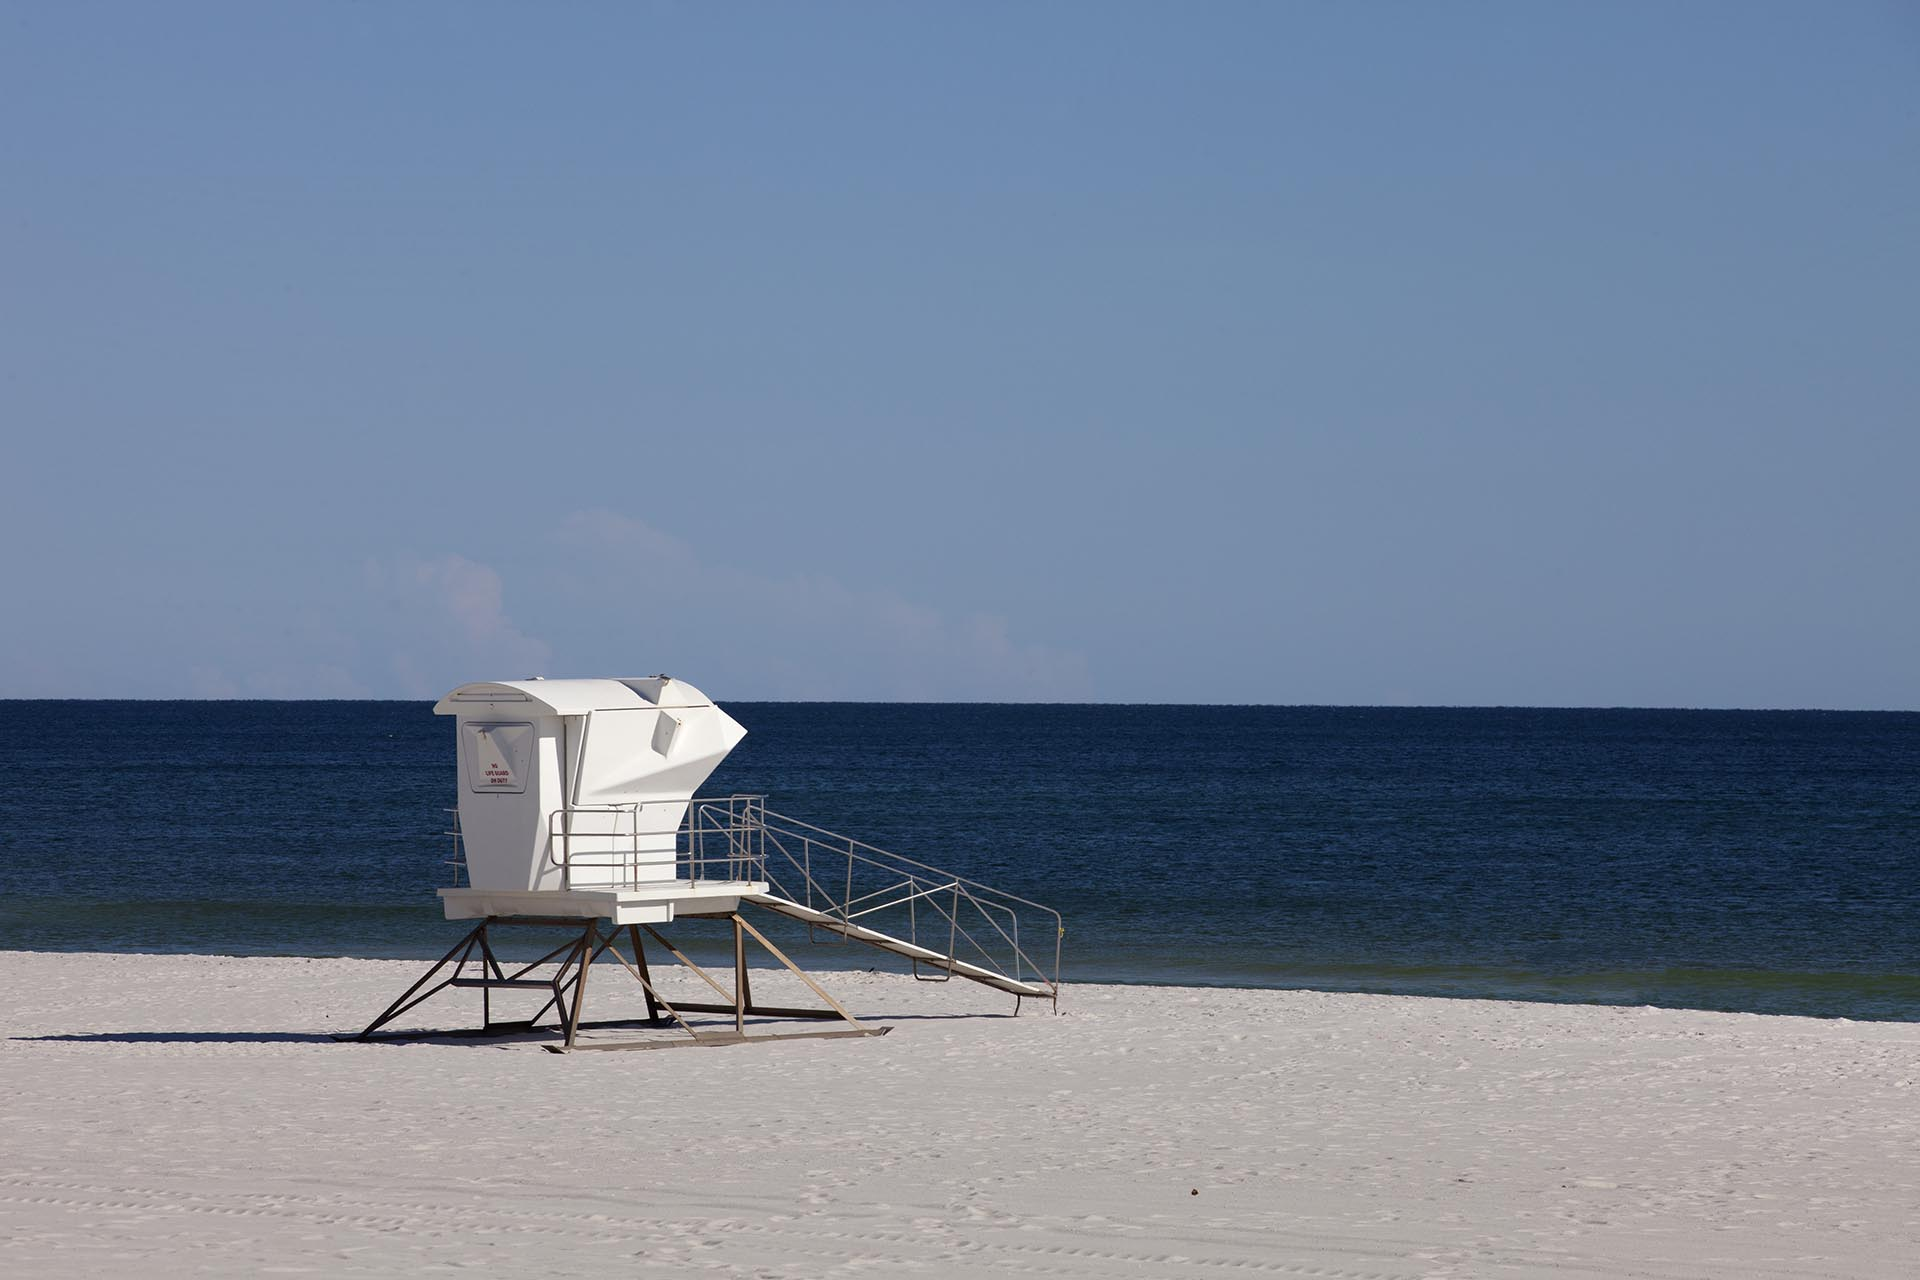 lifeguard tower on empty beach